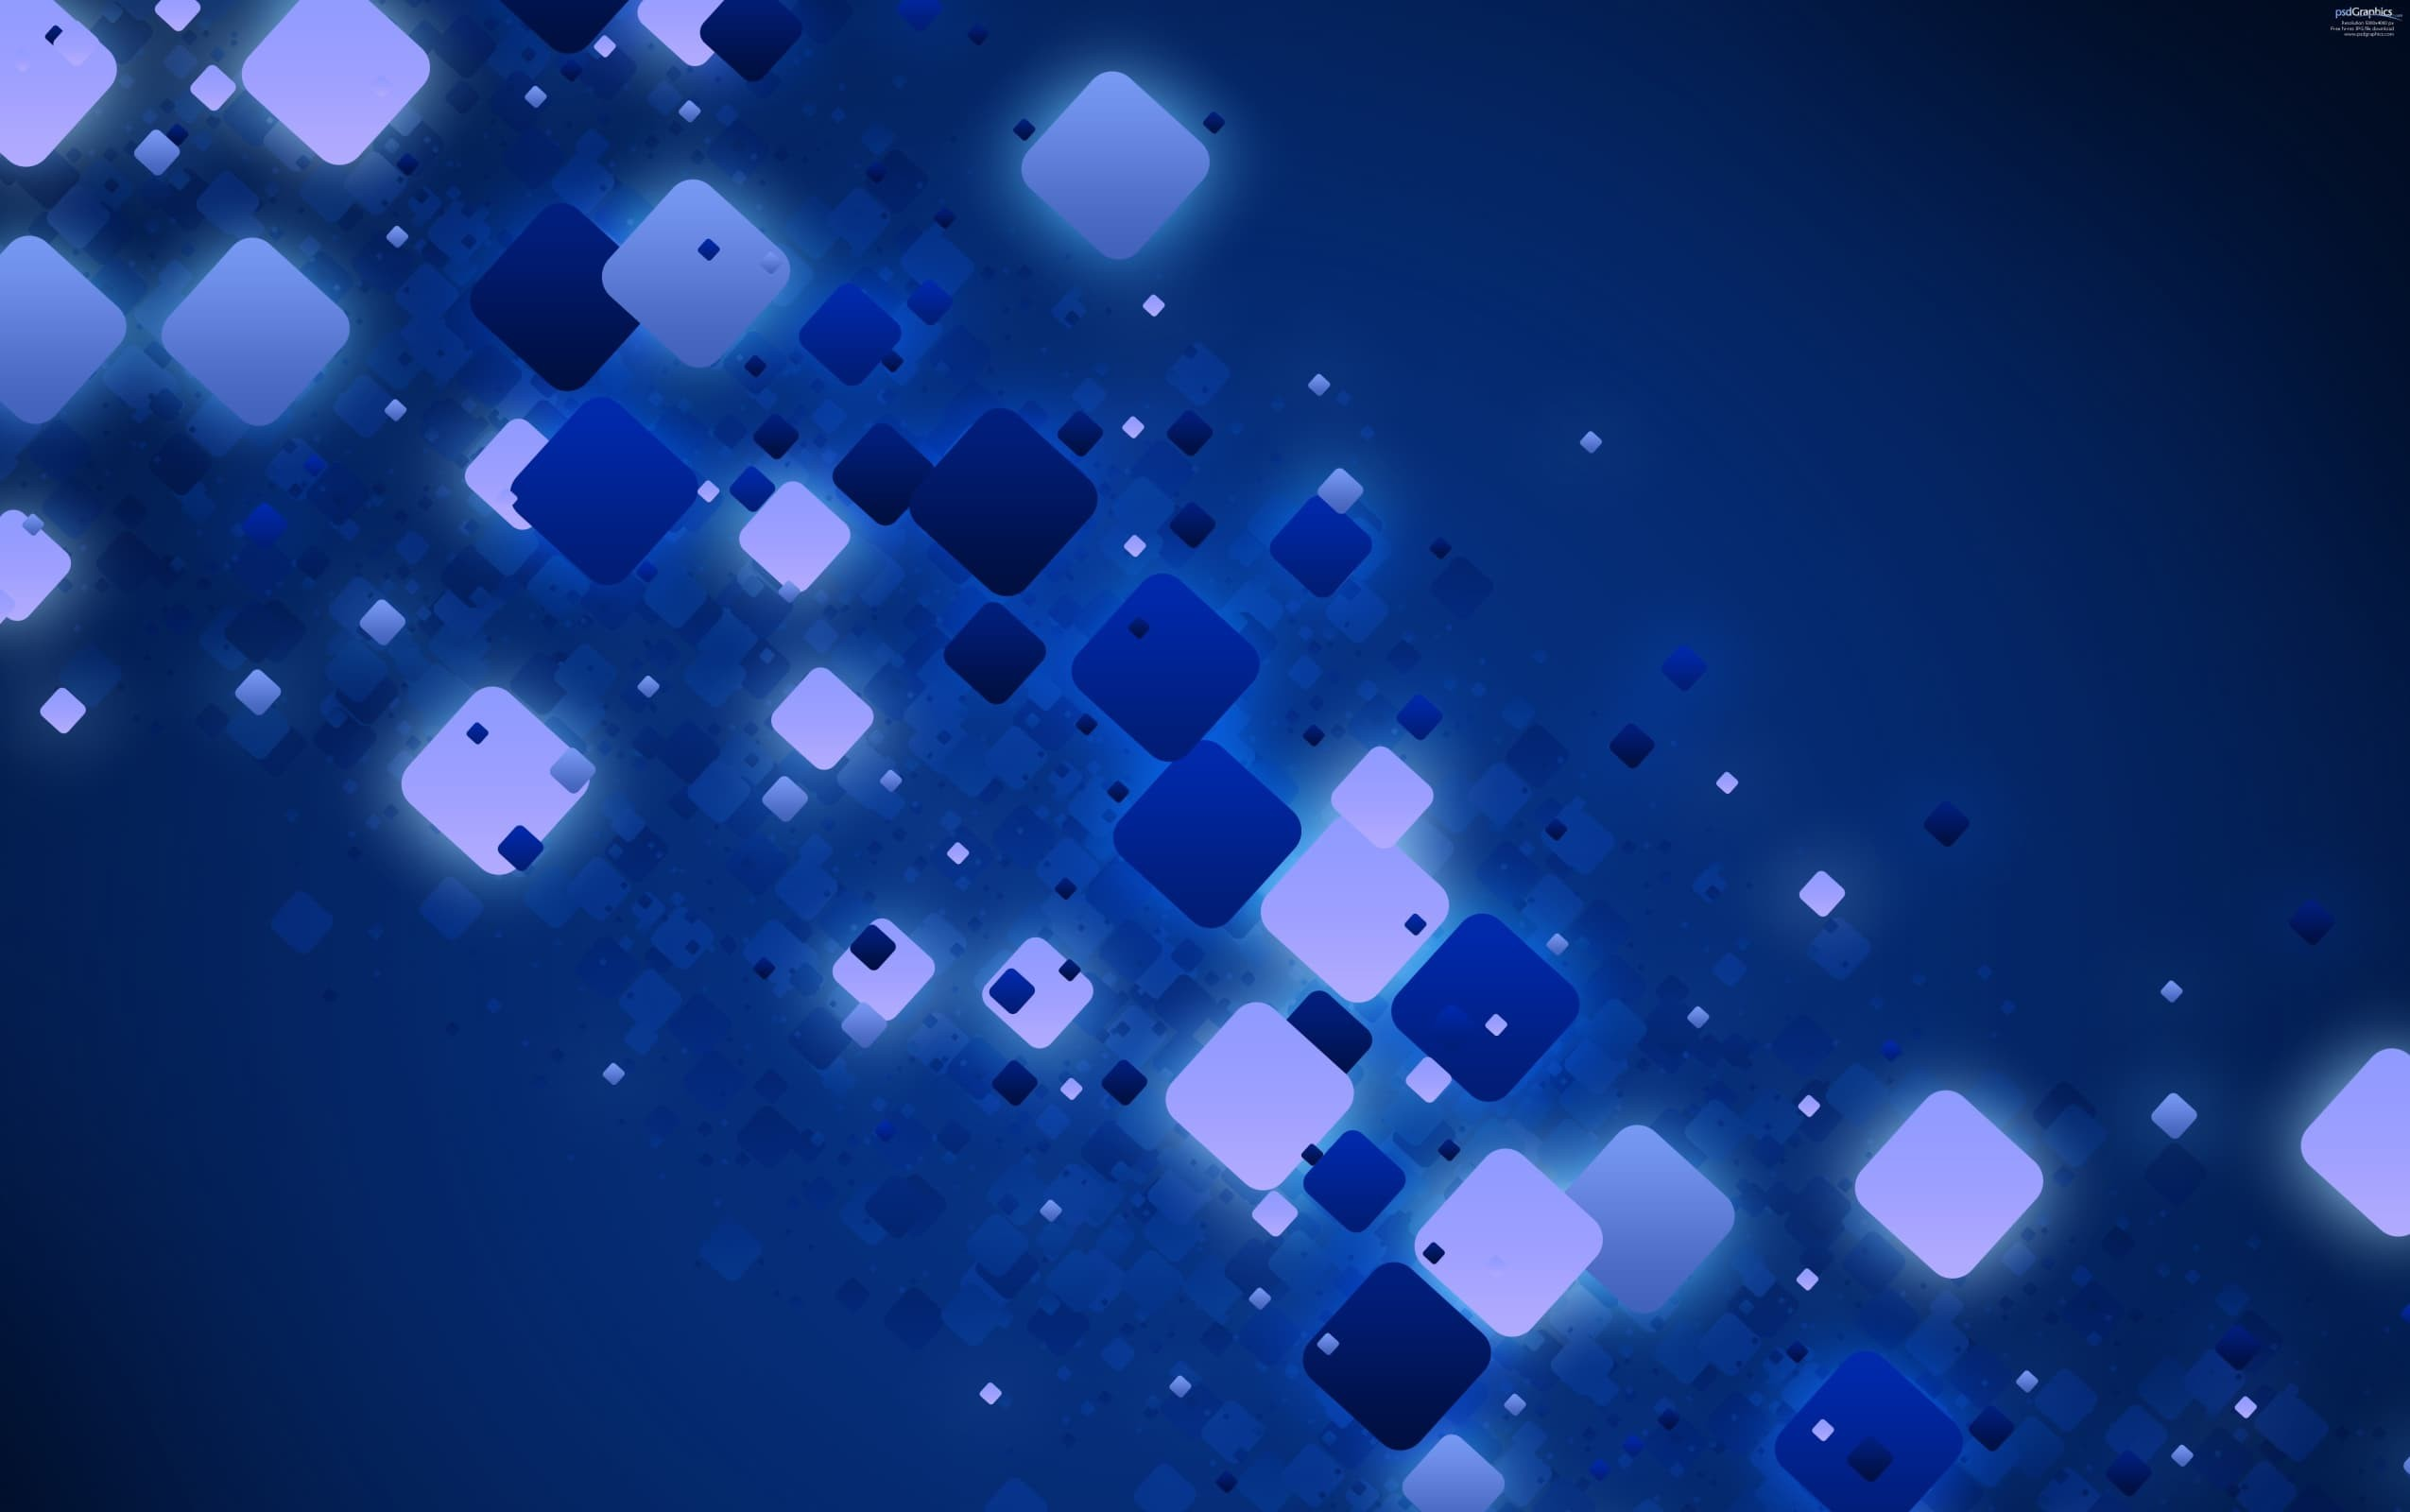 2550x1600 photo of Blue abstract